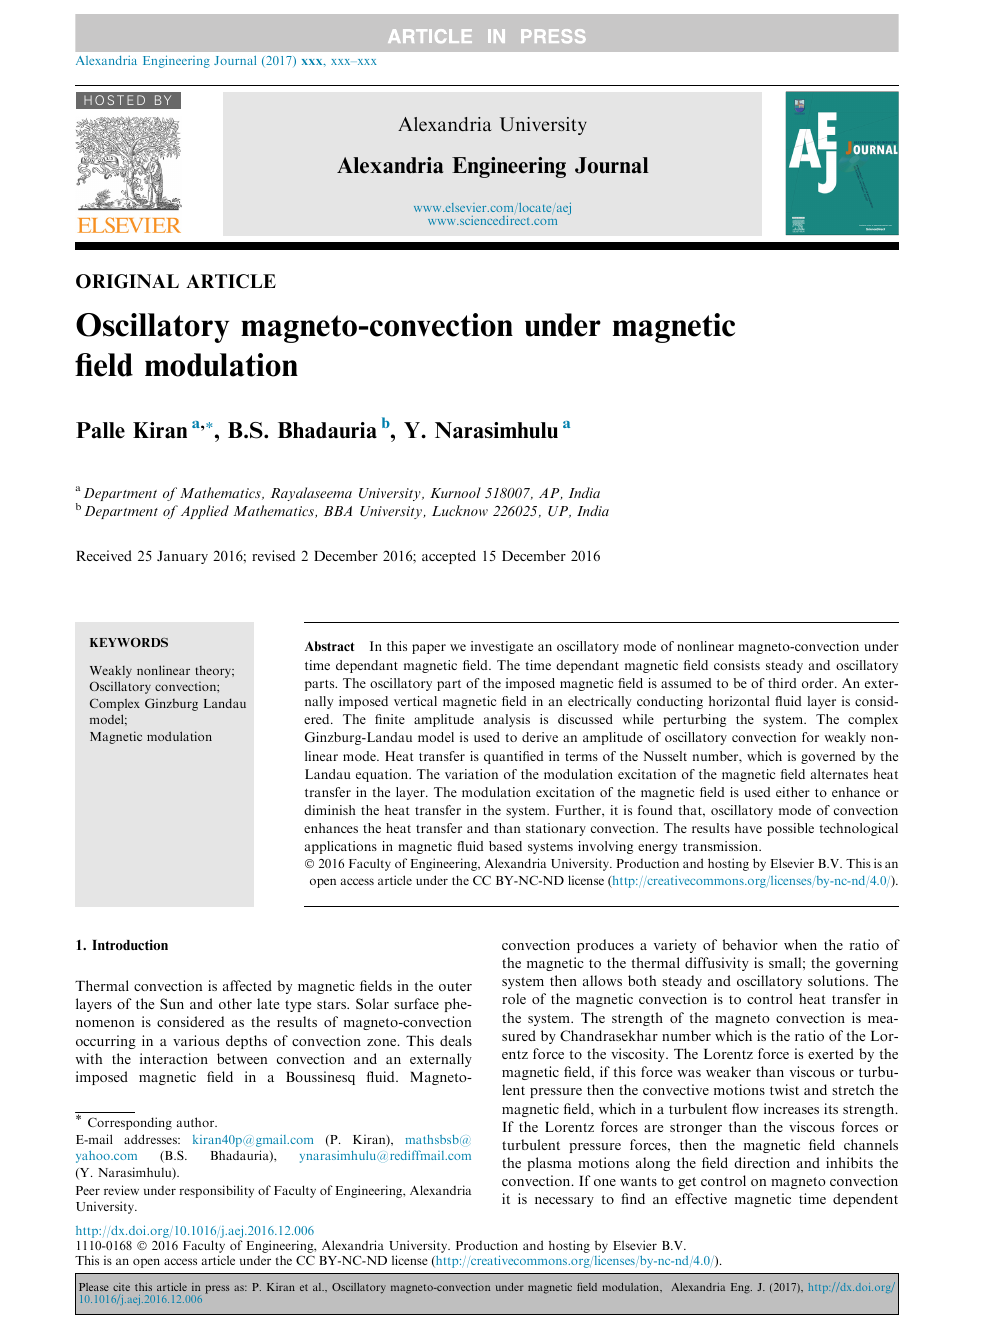 Oscillatory magneto-convection under magnetic field modulation